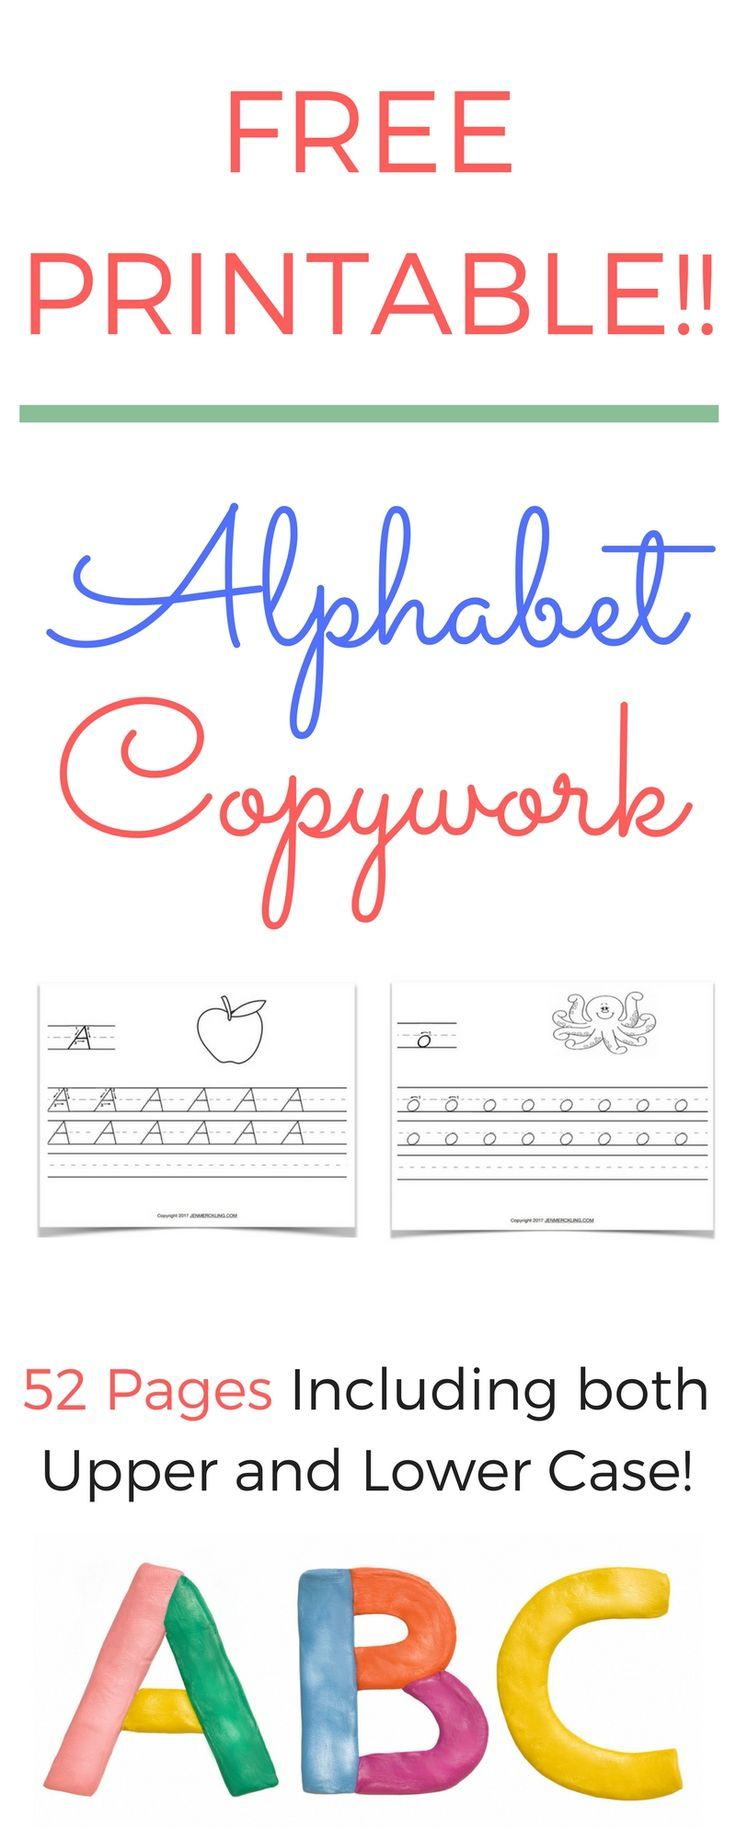 Worksheets Free Printable Handwriting Worksheets free handwriting worksheets for kids practice alphabet copywork printable upper and lowercase letters improve your childs incr